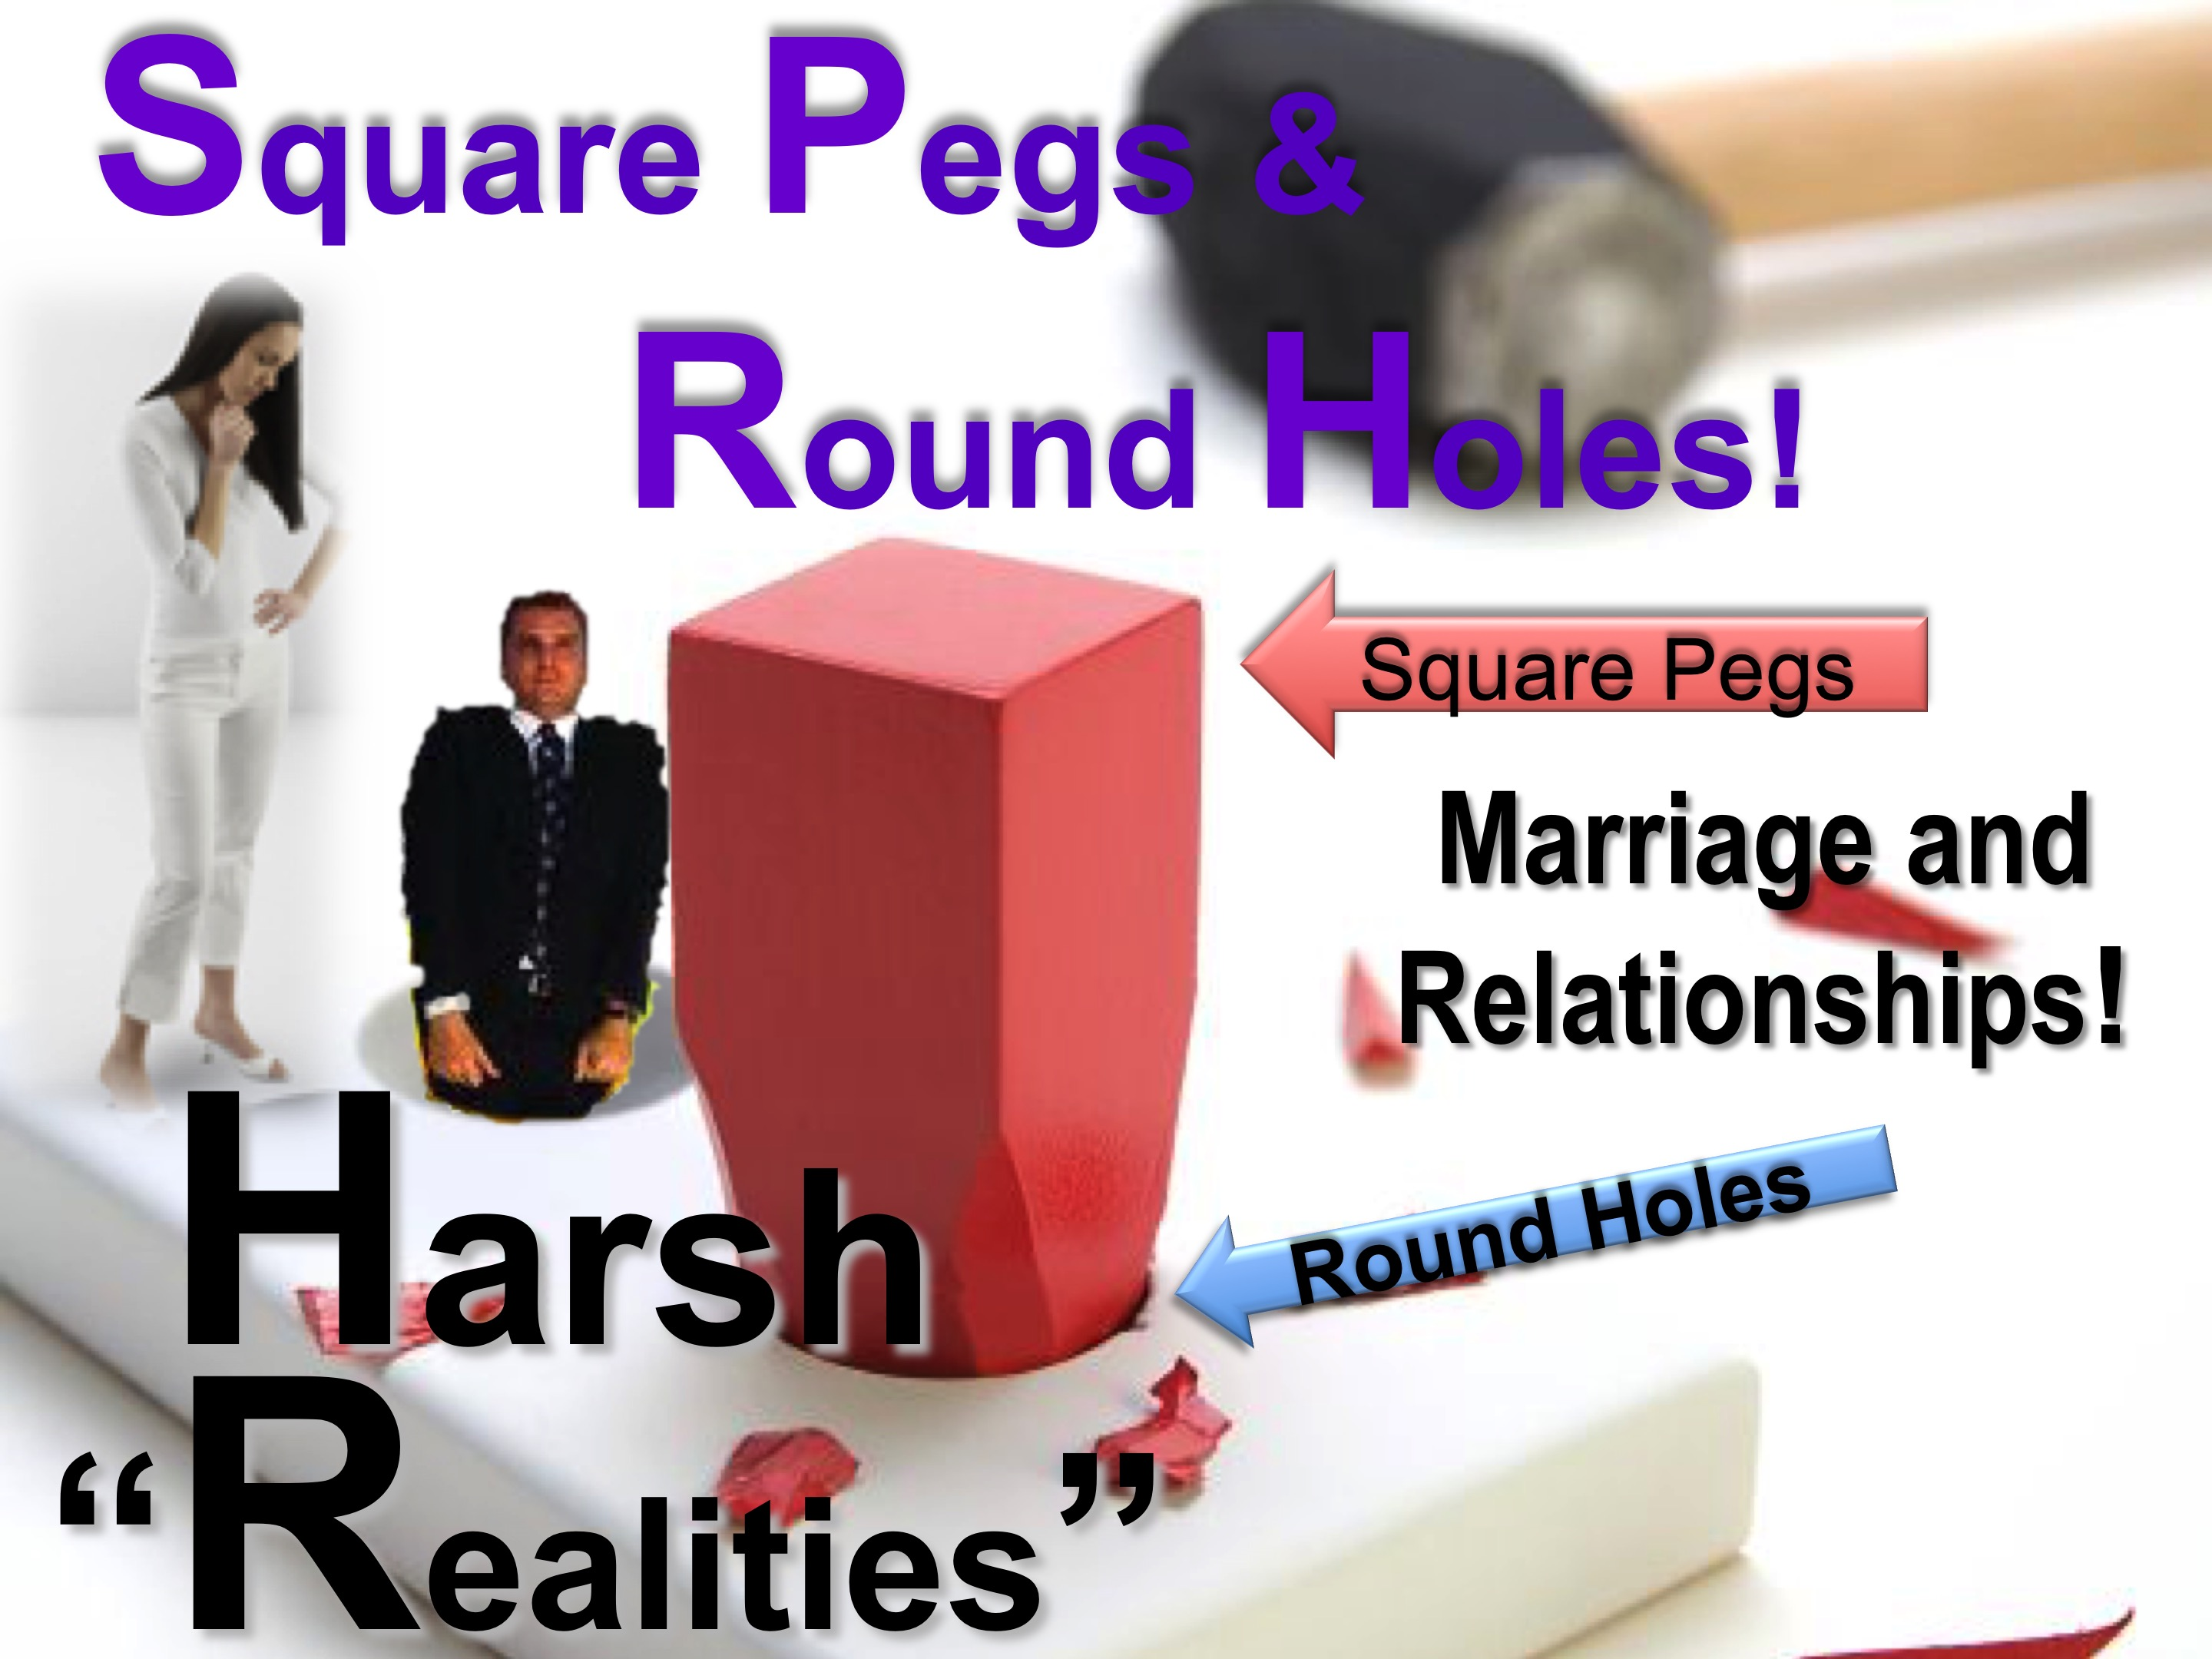 Square Pegs & Round Holes - Marriage Edition